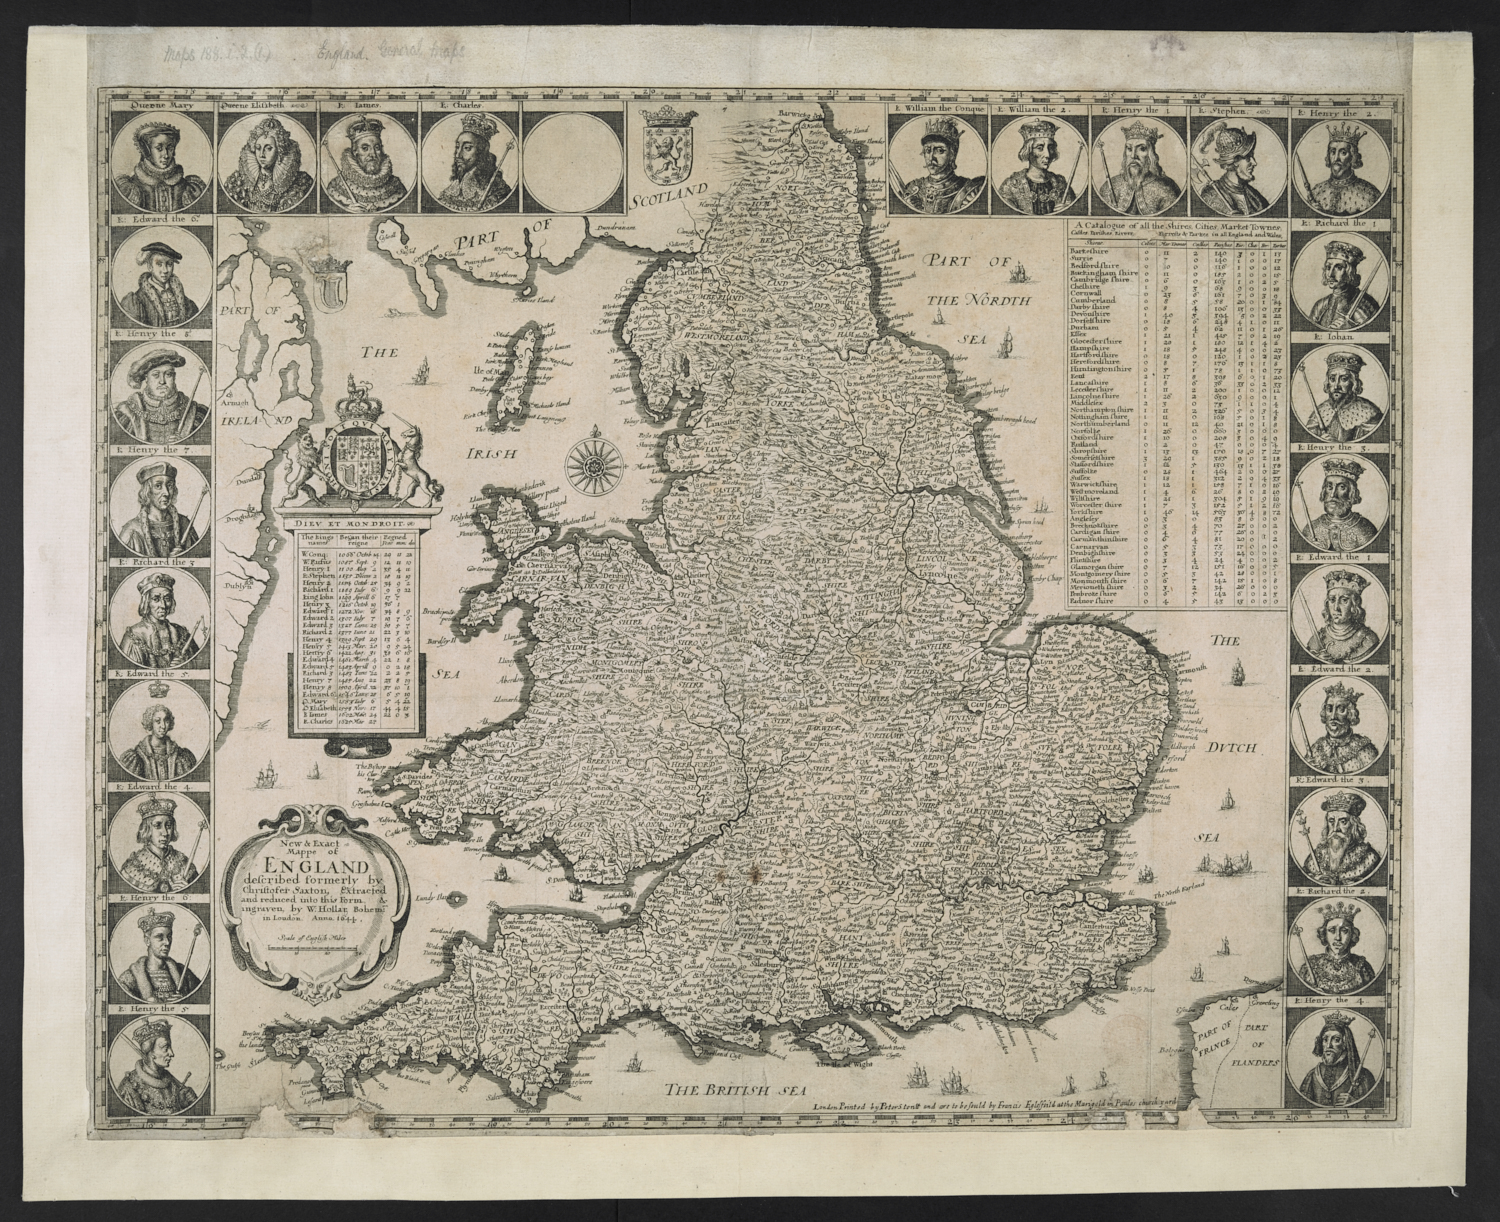 Wenceslaus Hollar's map of England of 1644 adapted from Christopher Saxton's